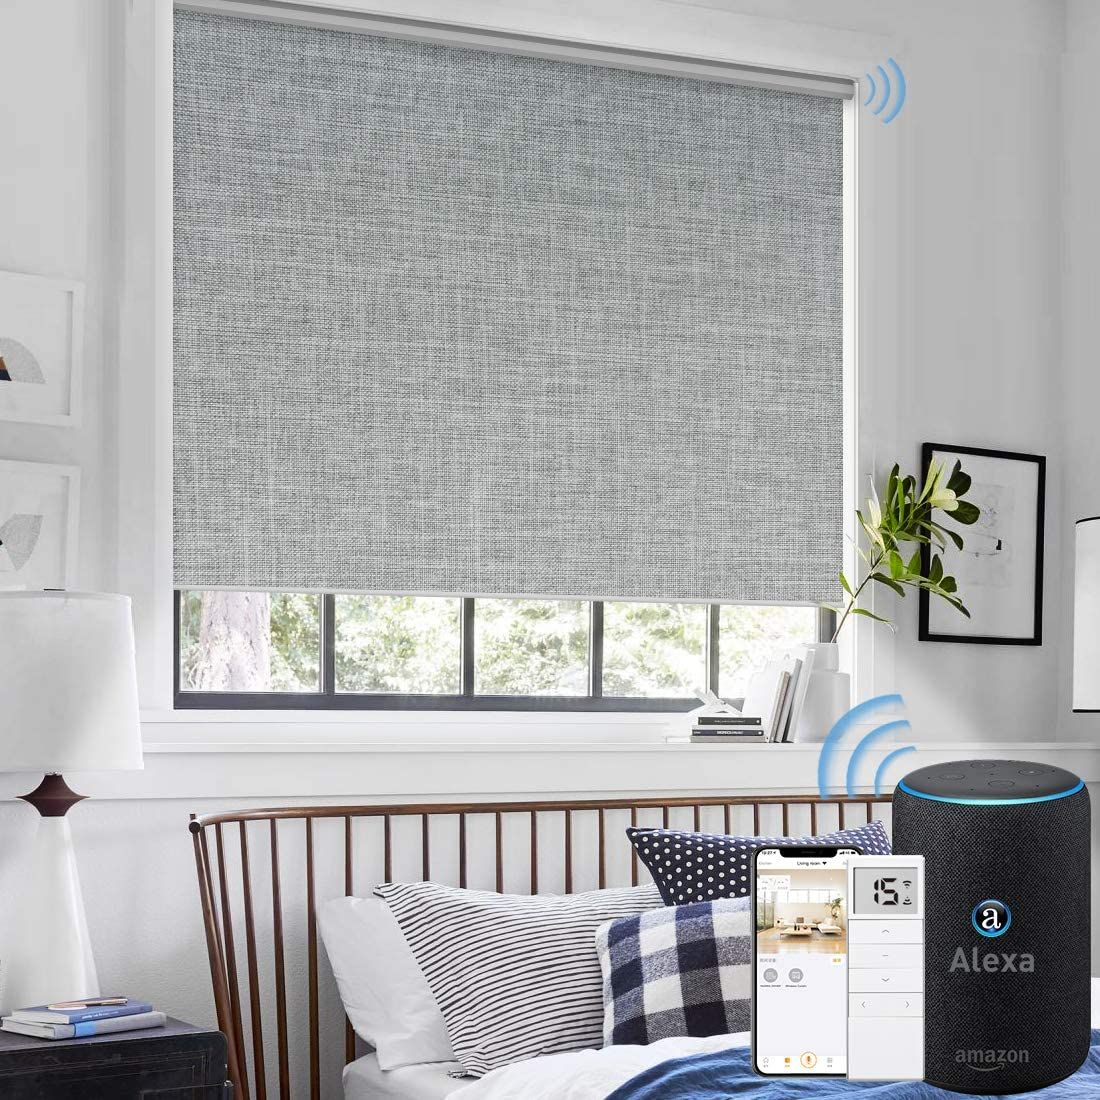 Amazon Com Graywind Motorized Roller Shades 100 Blackout Window Blinds Remote Voice Control Thermal Insulated Triple Weaved Fabric With Valance For Smart Home Office Customized Size Light Grey Kitchen Dining